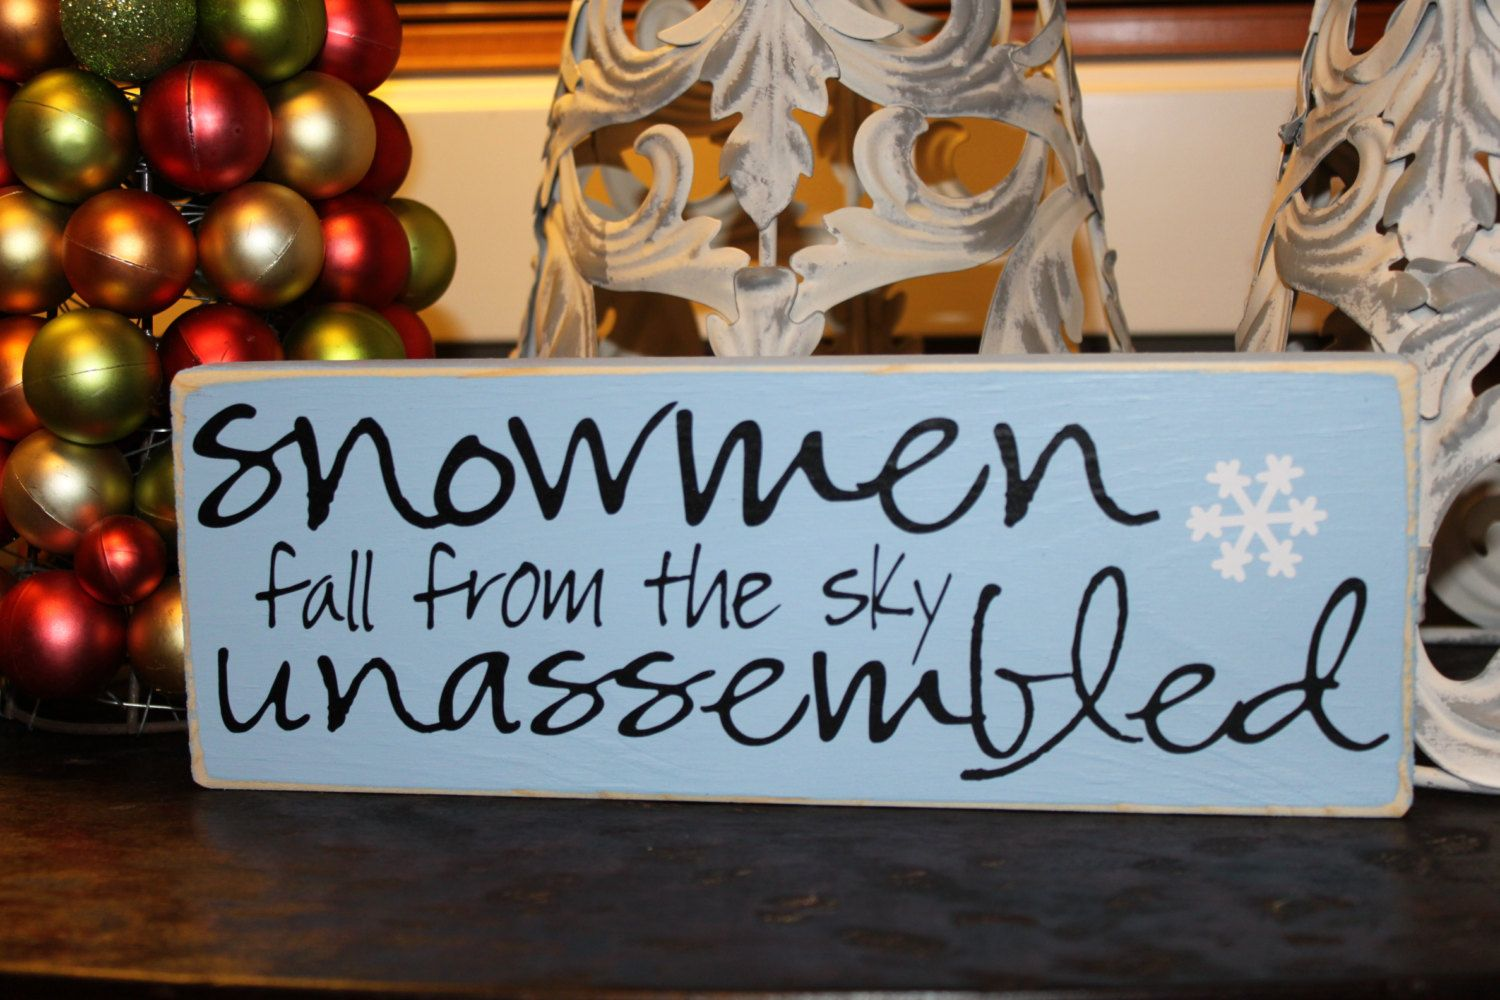 Snowmen fall from the sky unassembled - Sign - Winter - Christmas Decor - Holidays by SignsbyJen on Etsy